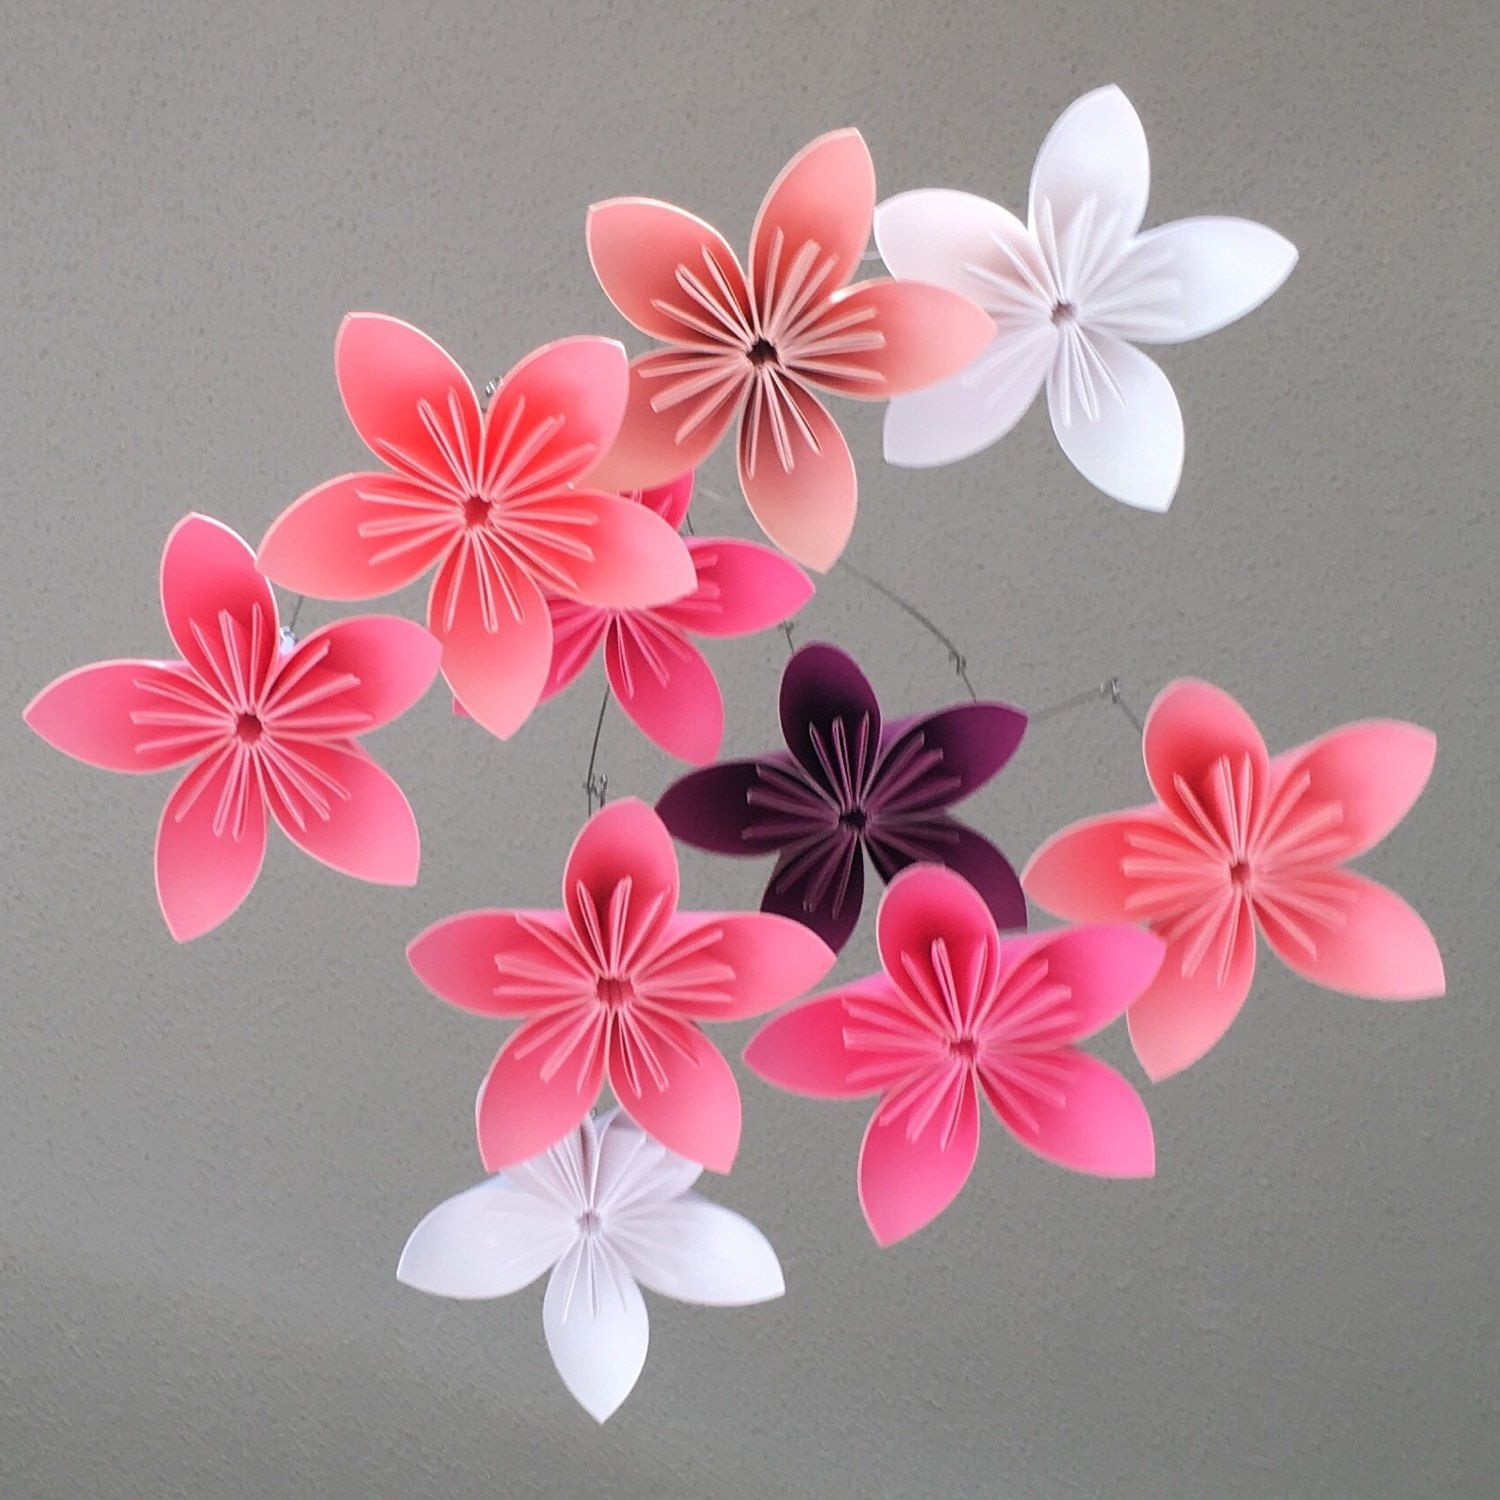 Origami flower with a4 paper ukrandiffusion flower baby mobile custom mobile paper flower mobile paper flower mightylinksfo